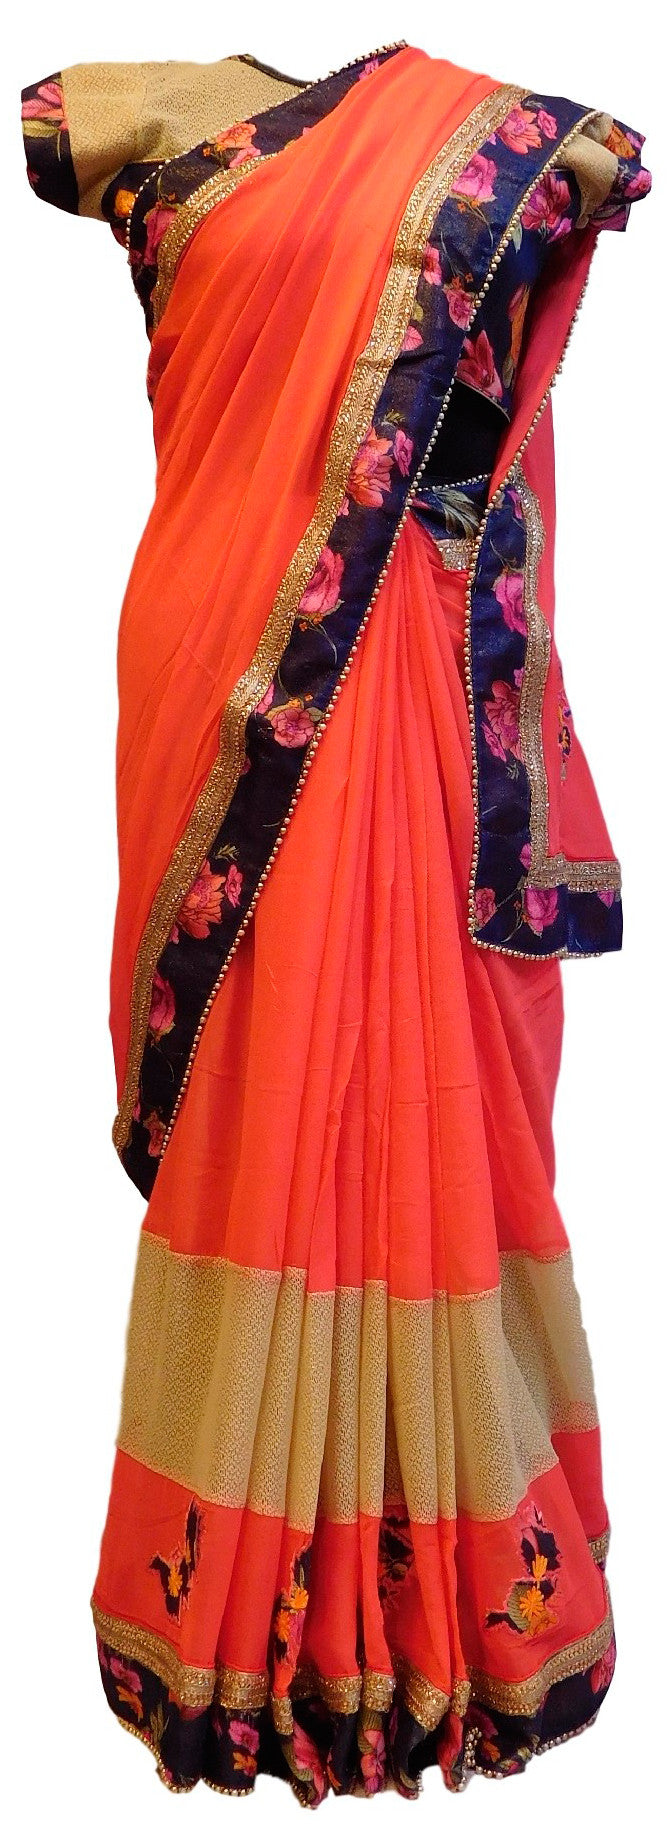 Gajari Designer Georgette (Viscos) Floral Print Border Hand Embroidery Work Saree Sari With Stylish Blouse